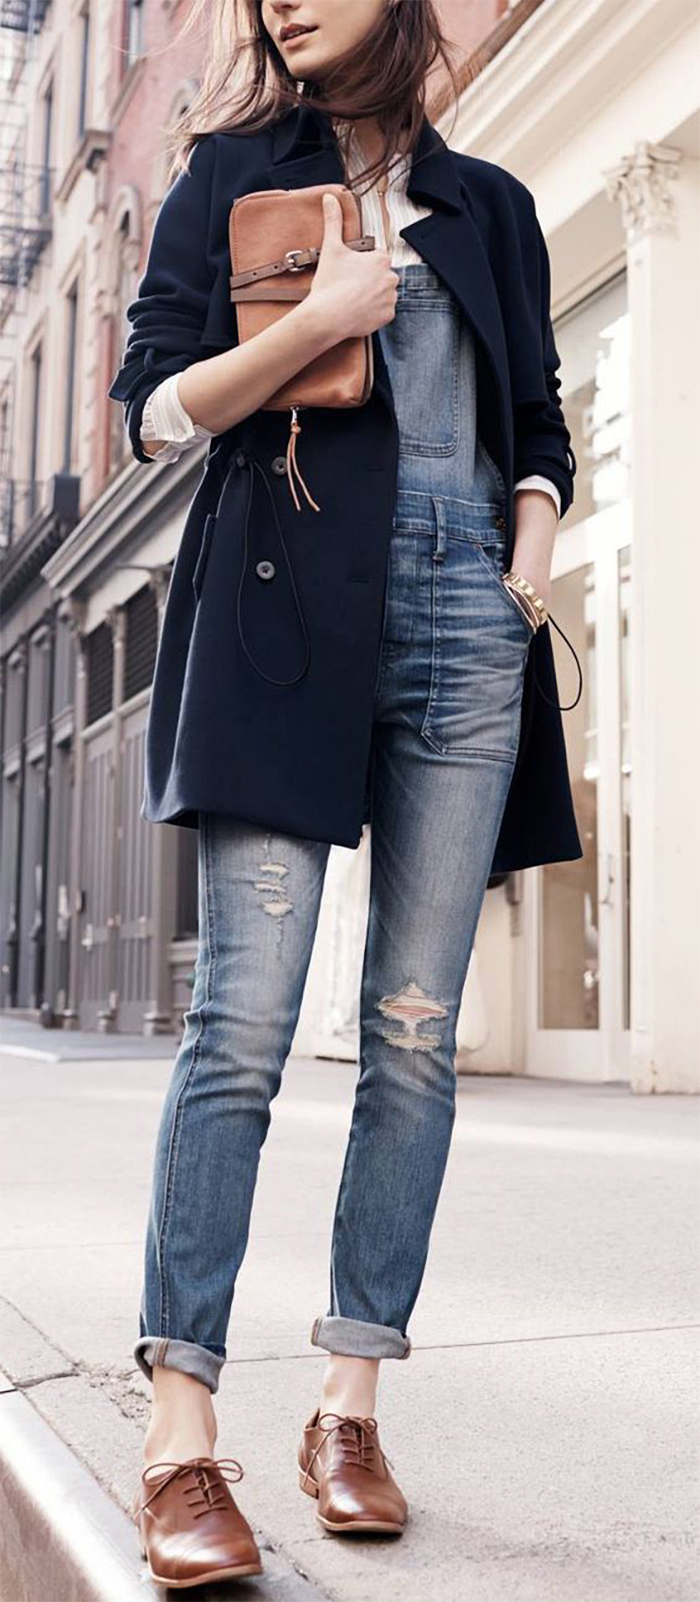 Hither-Thither-Madewell-Overalls-Shoes